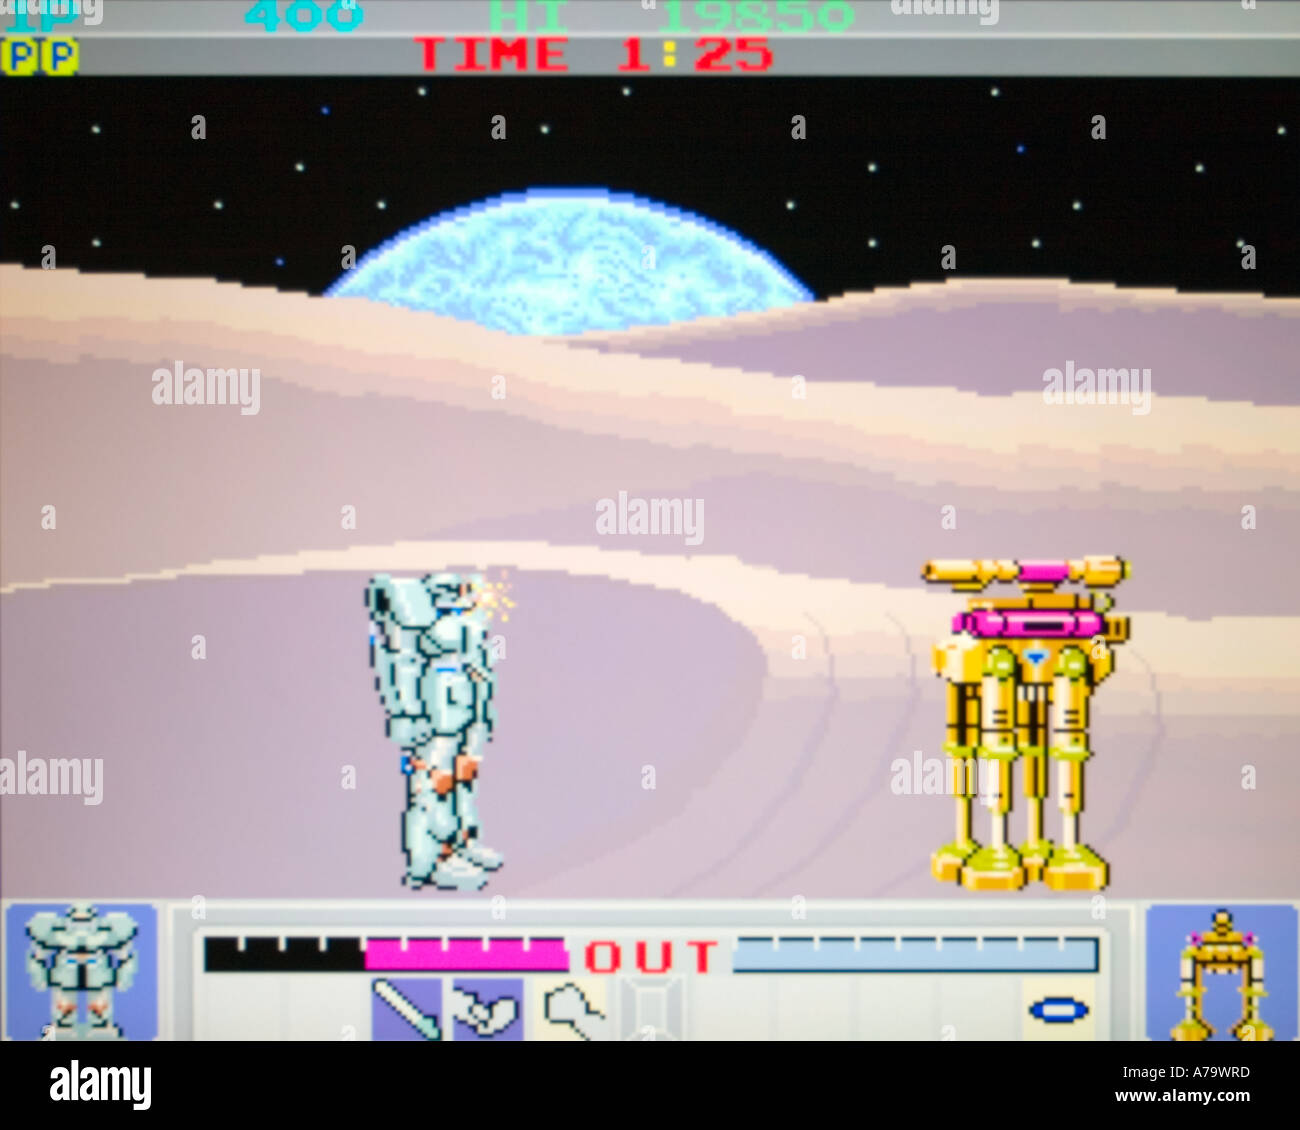 Galactic Warriors Konami 1985 vintage arcade videogame screenshot - EDITORIAL USE ONLY - Stock Image